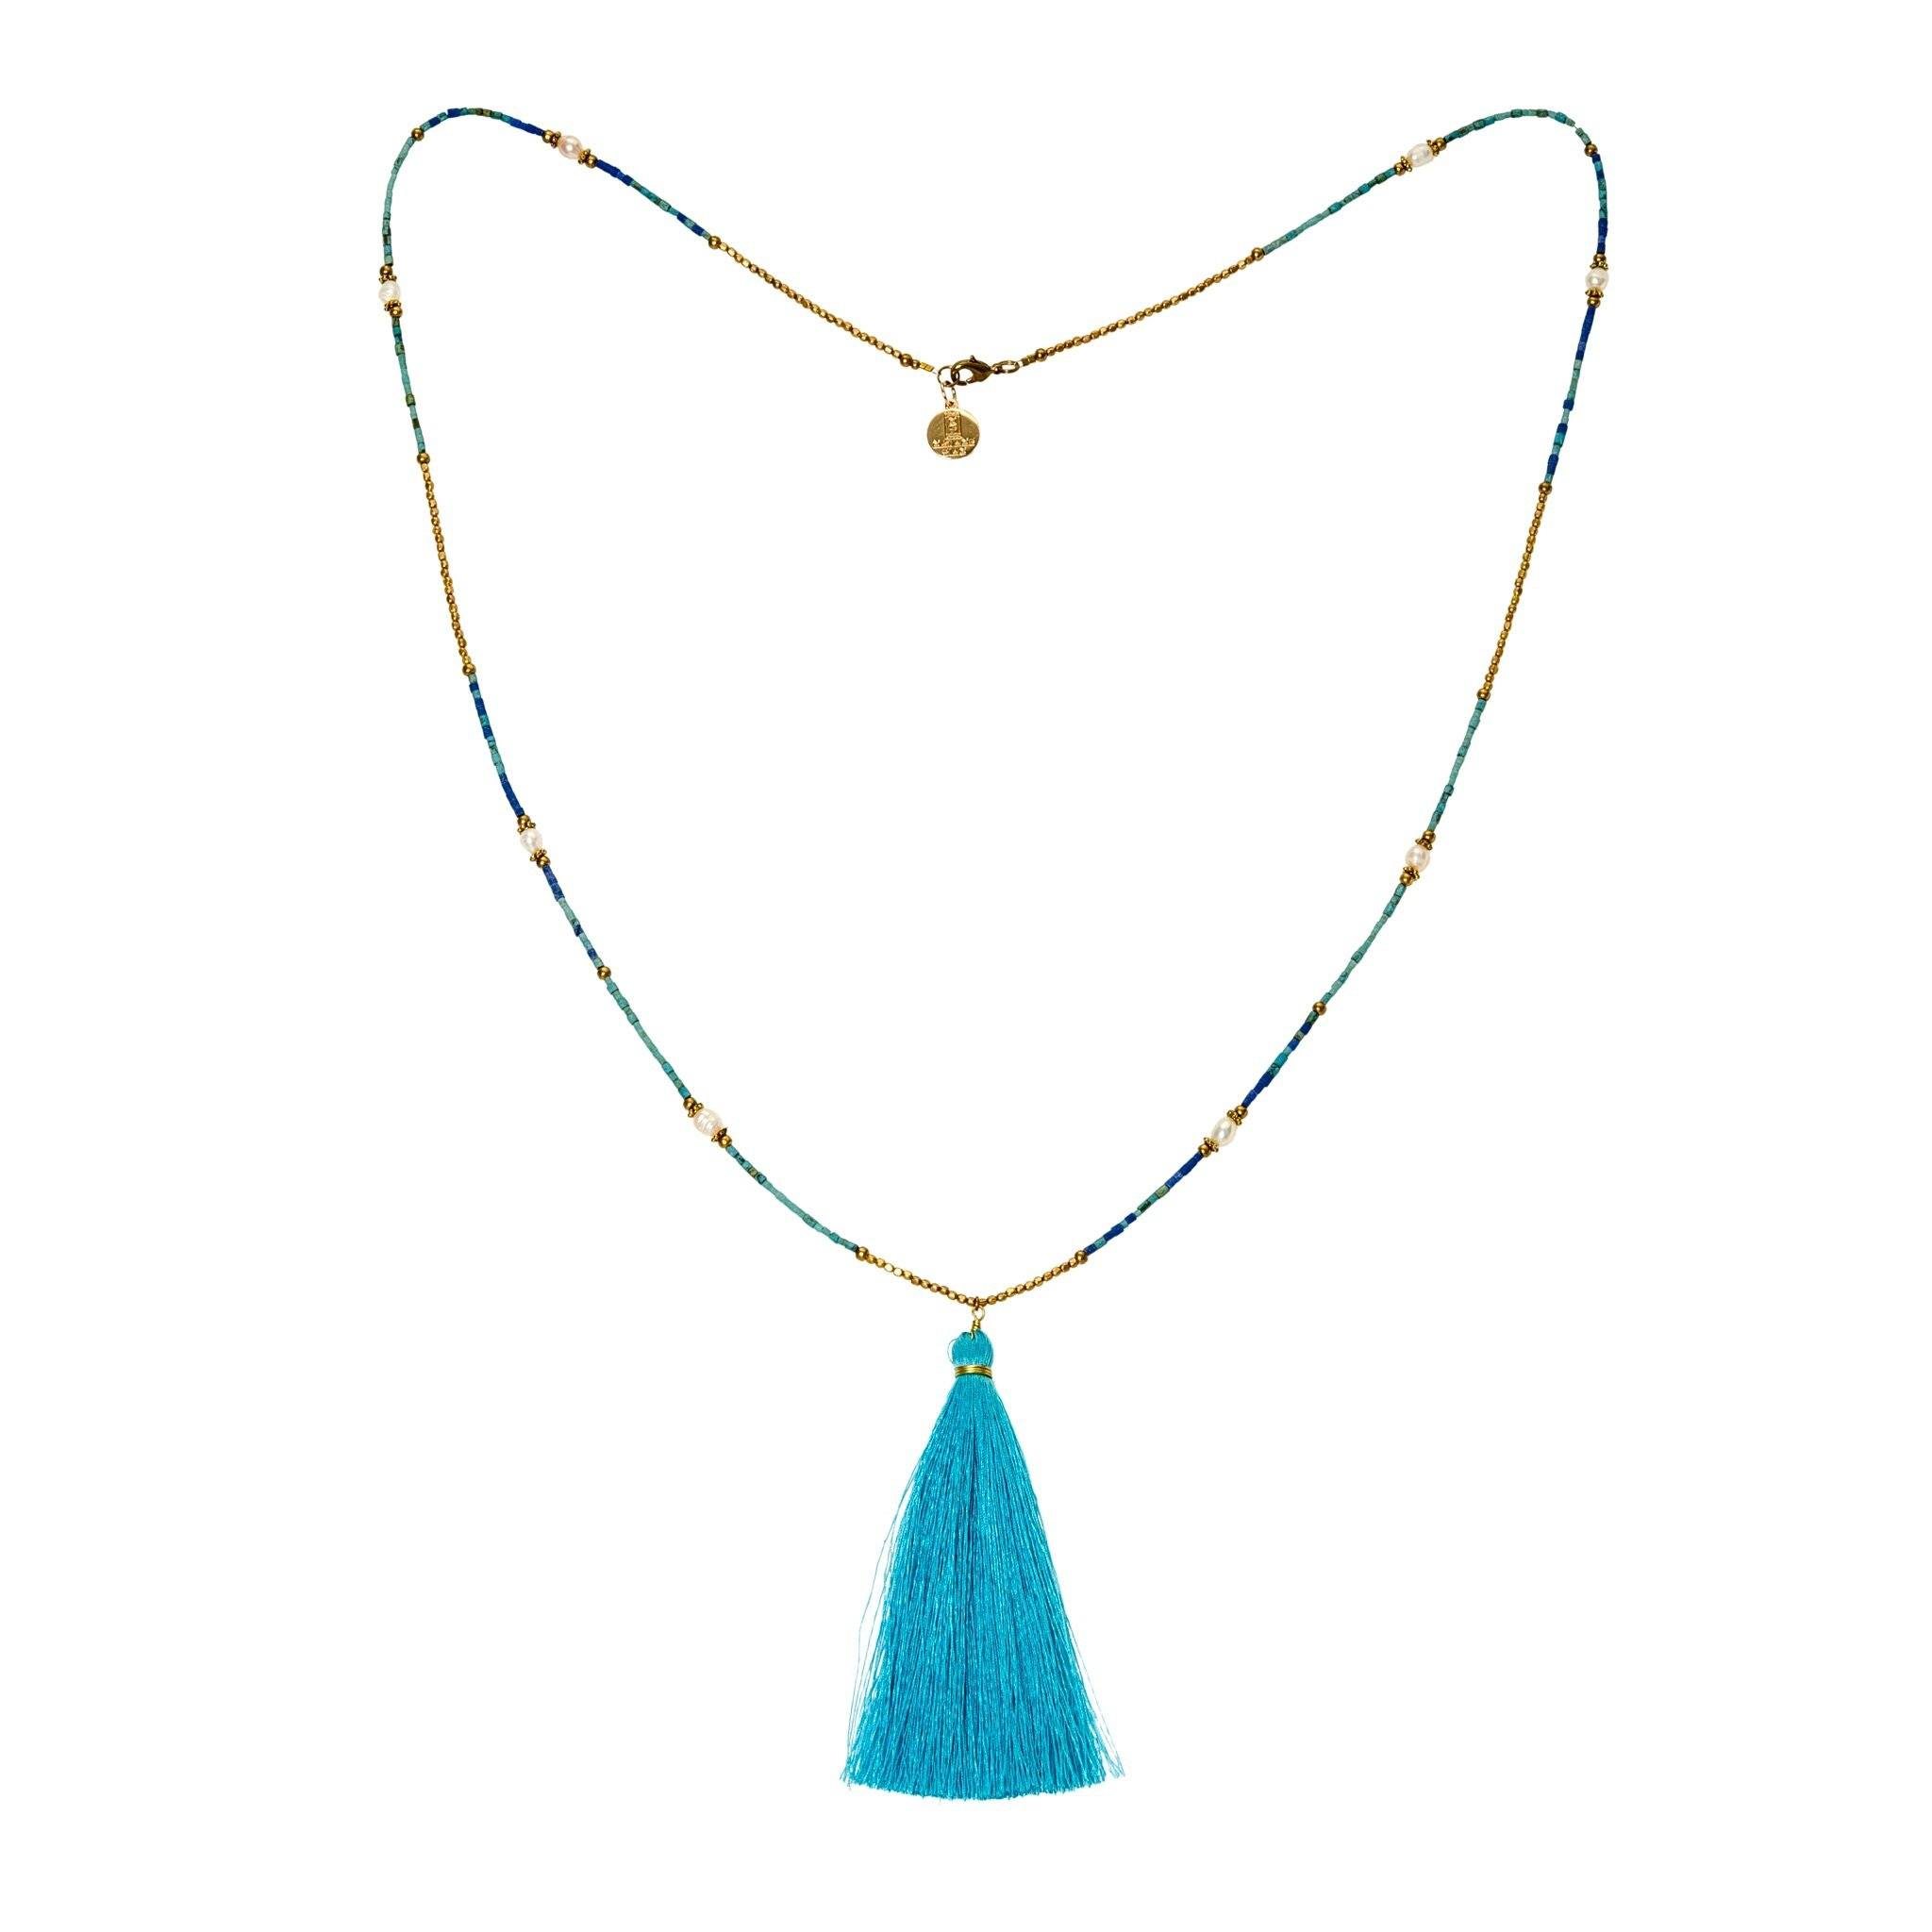 PLAYA blue tassel necklace